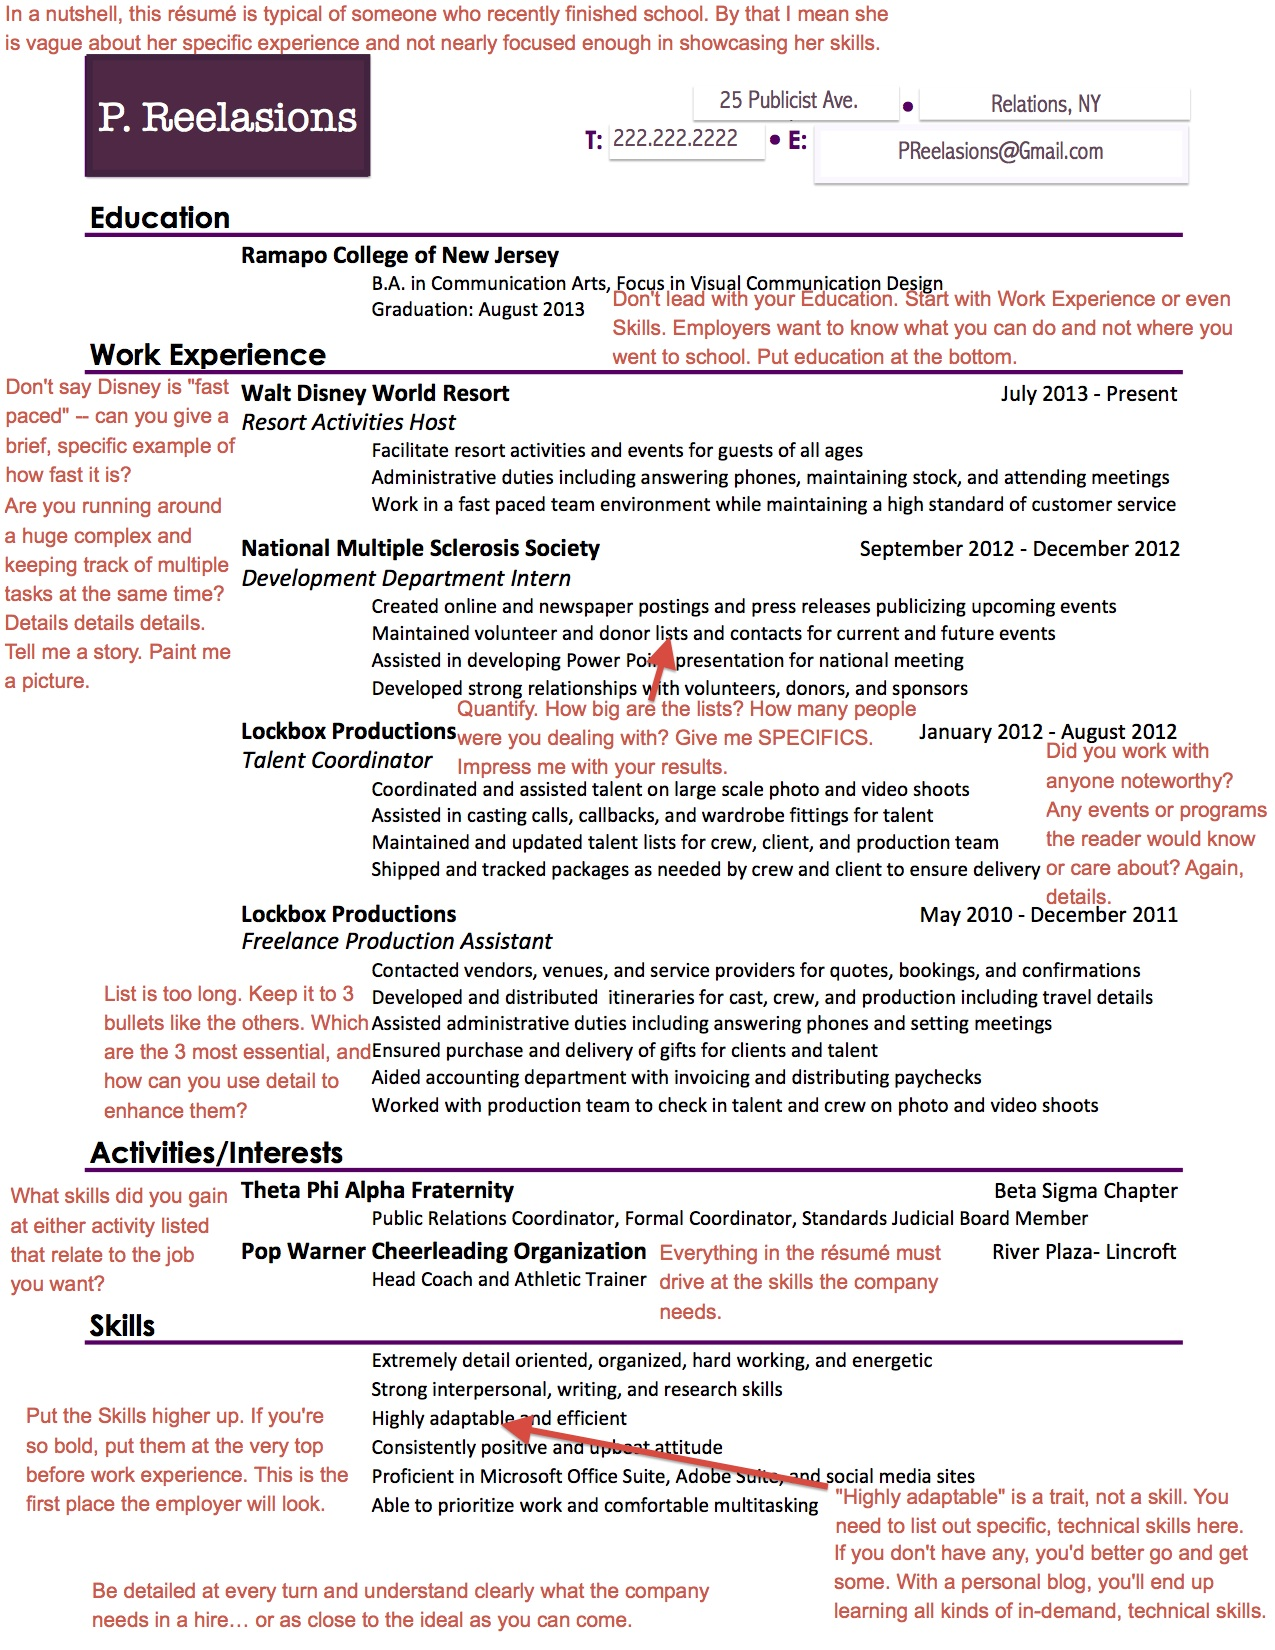 Resume What Kind Of Resume Are Employers Looking For what employers are looking for on your pr aftercollege p reelasions resume jpeg